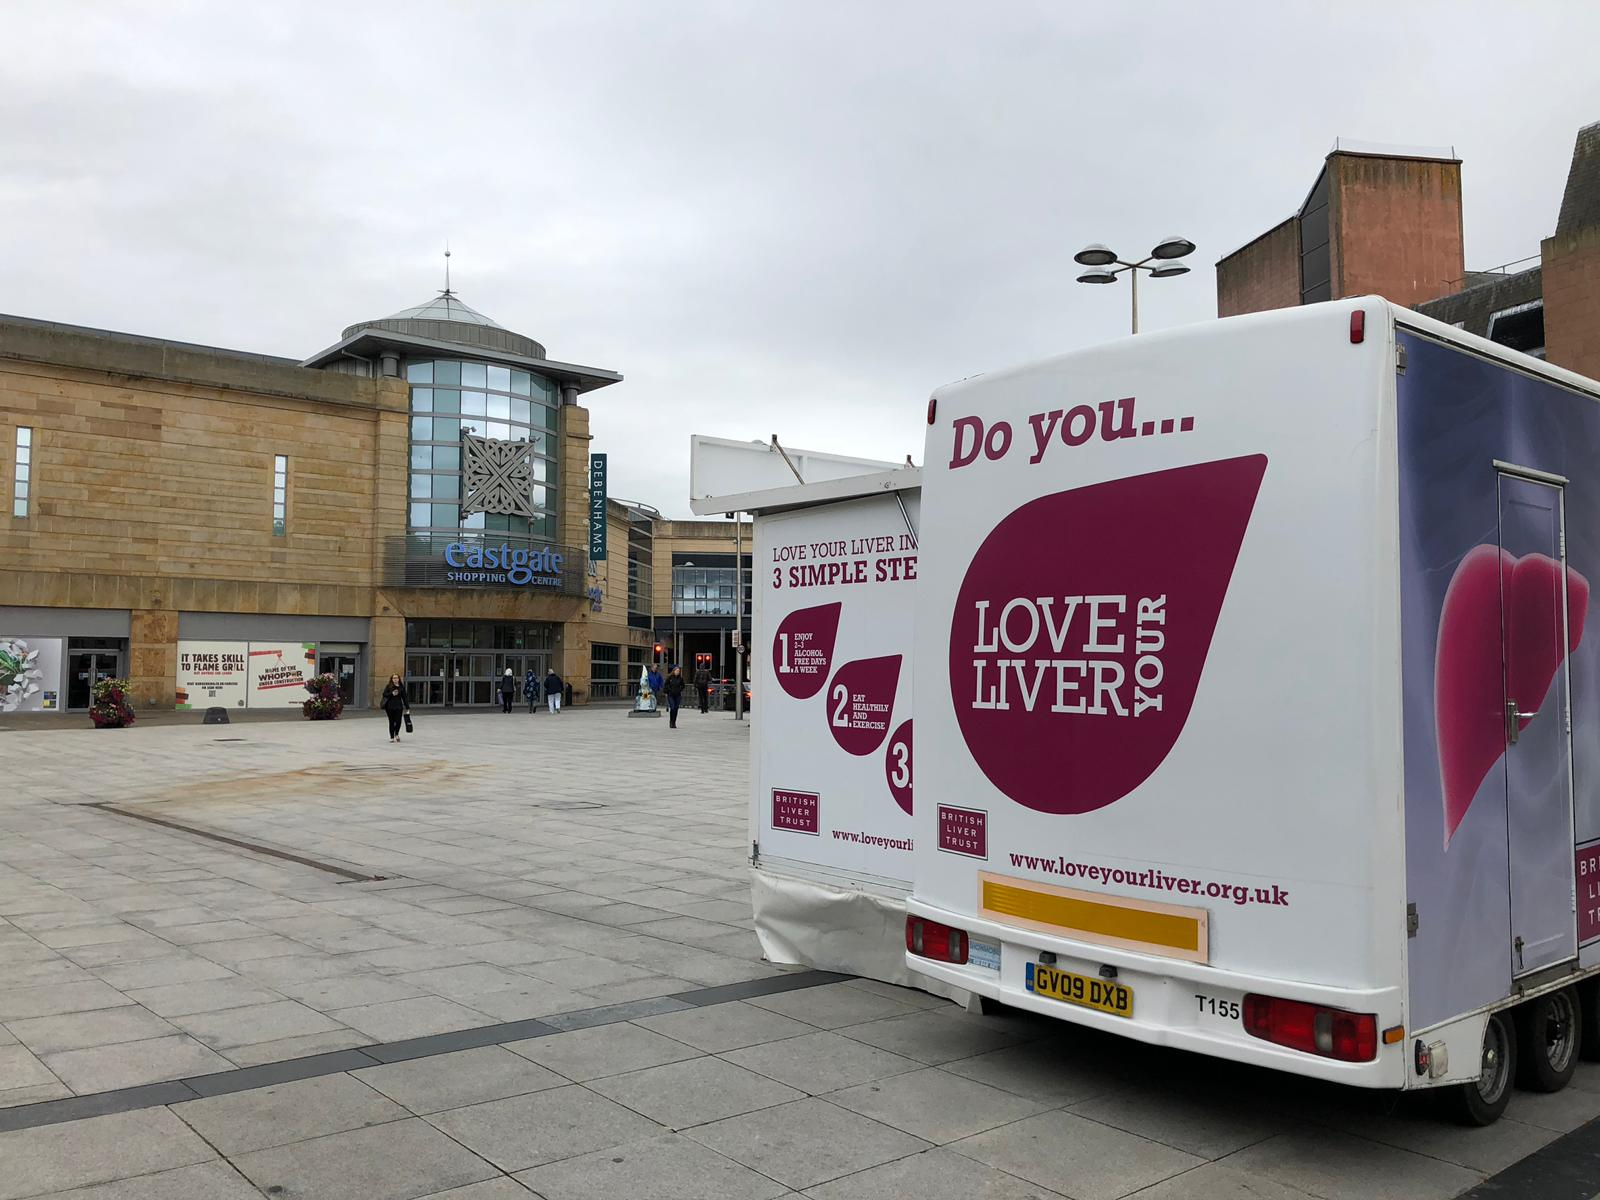 The Love Your Liver mobile unit visited Inverness' Falcon Square on Saturday where the shocking revelation was discovered.